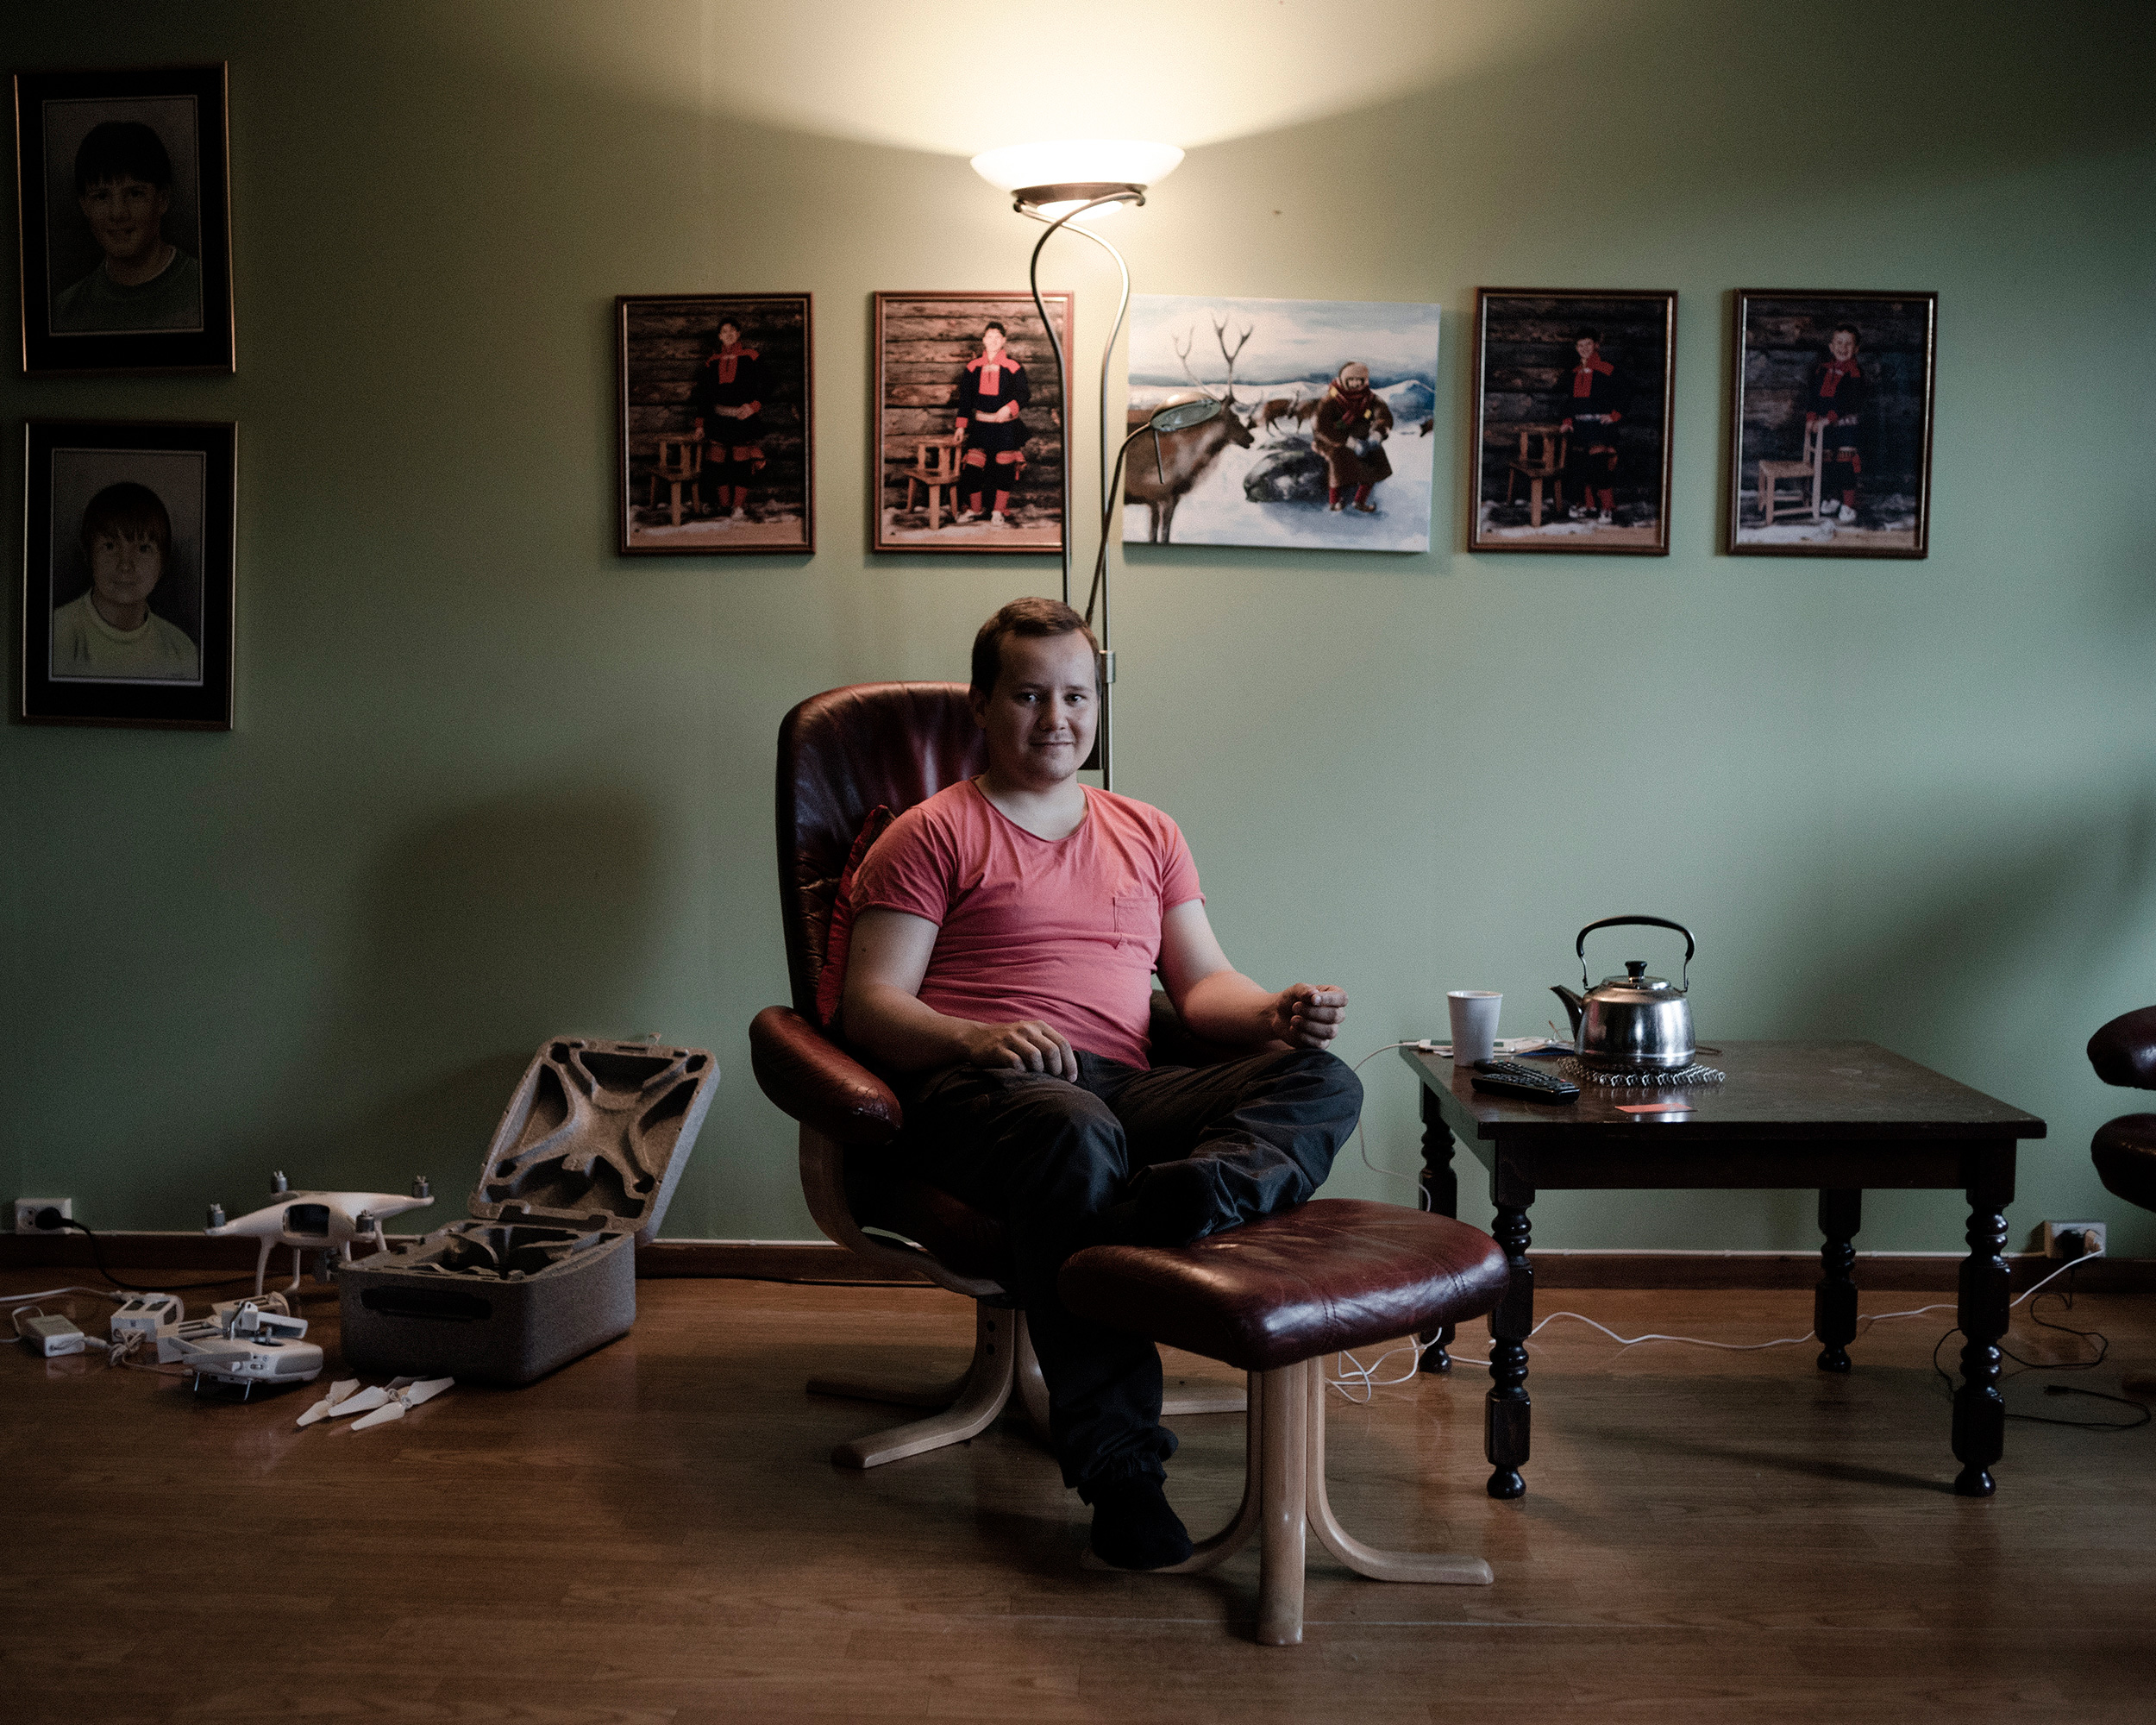 Jon Mikkel Eira is a younger reindeer chef who hopes to make his mark on the culinary world by preserving traditional Sami recipes. (Camilla Andersen/GroundTruth)